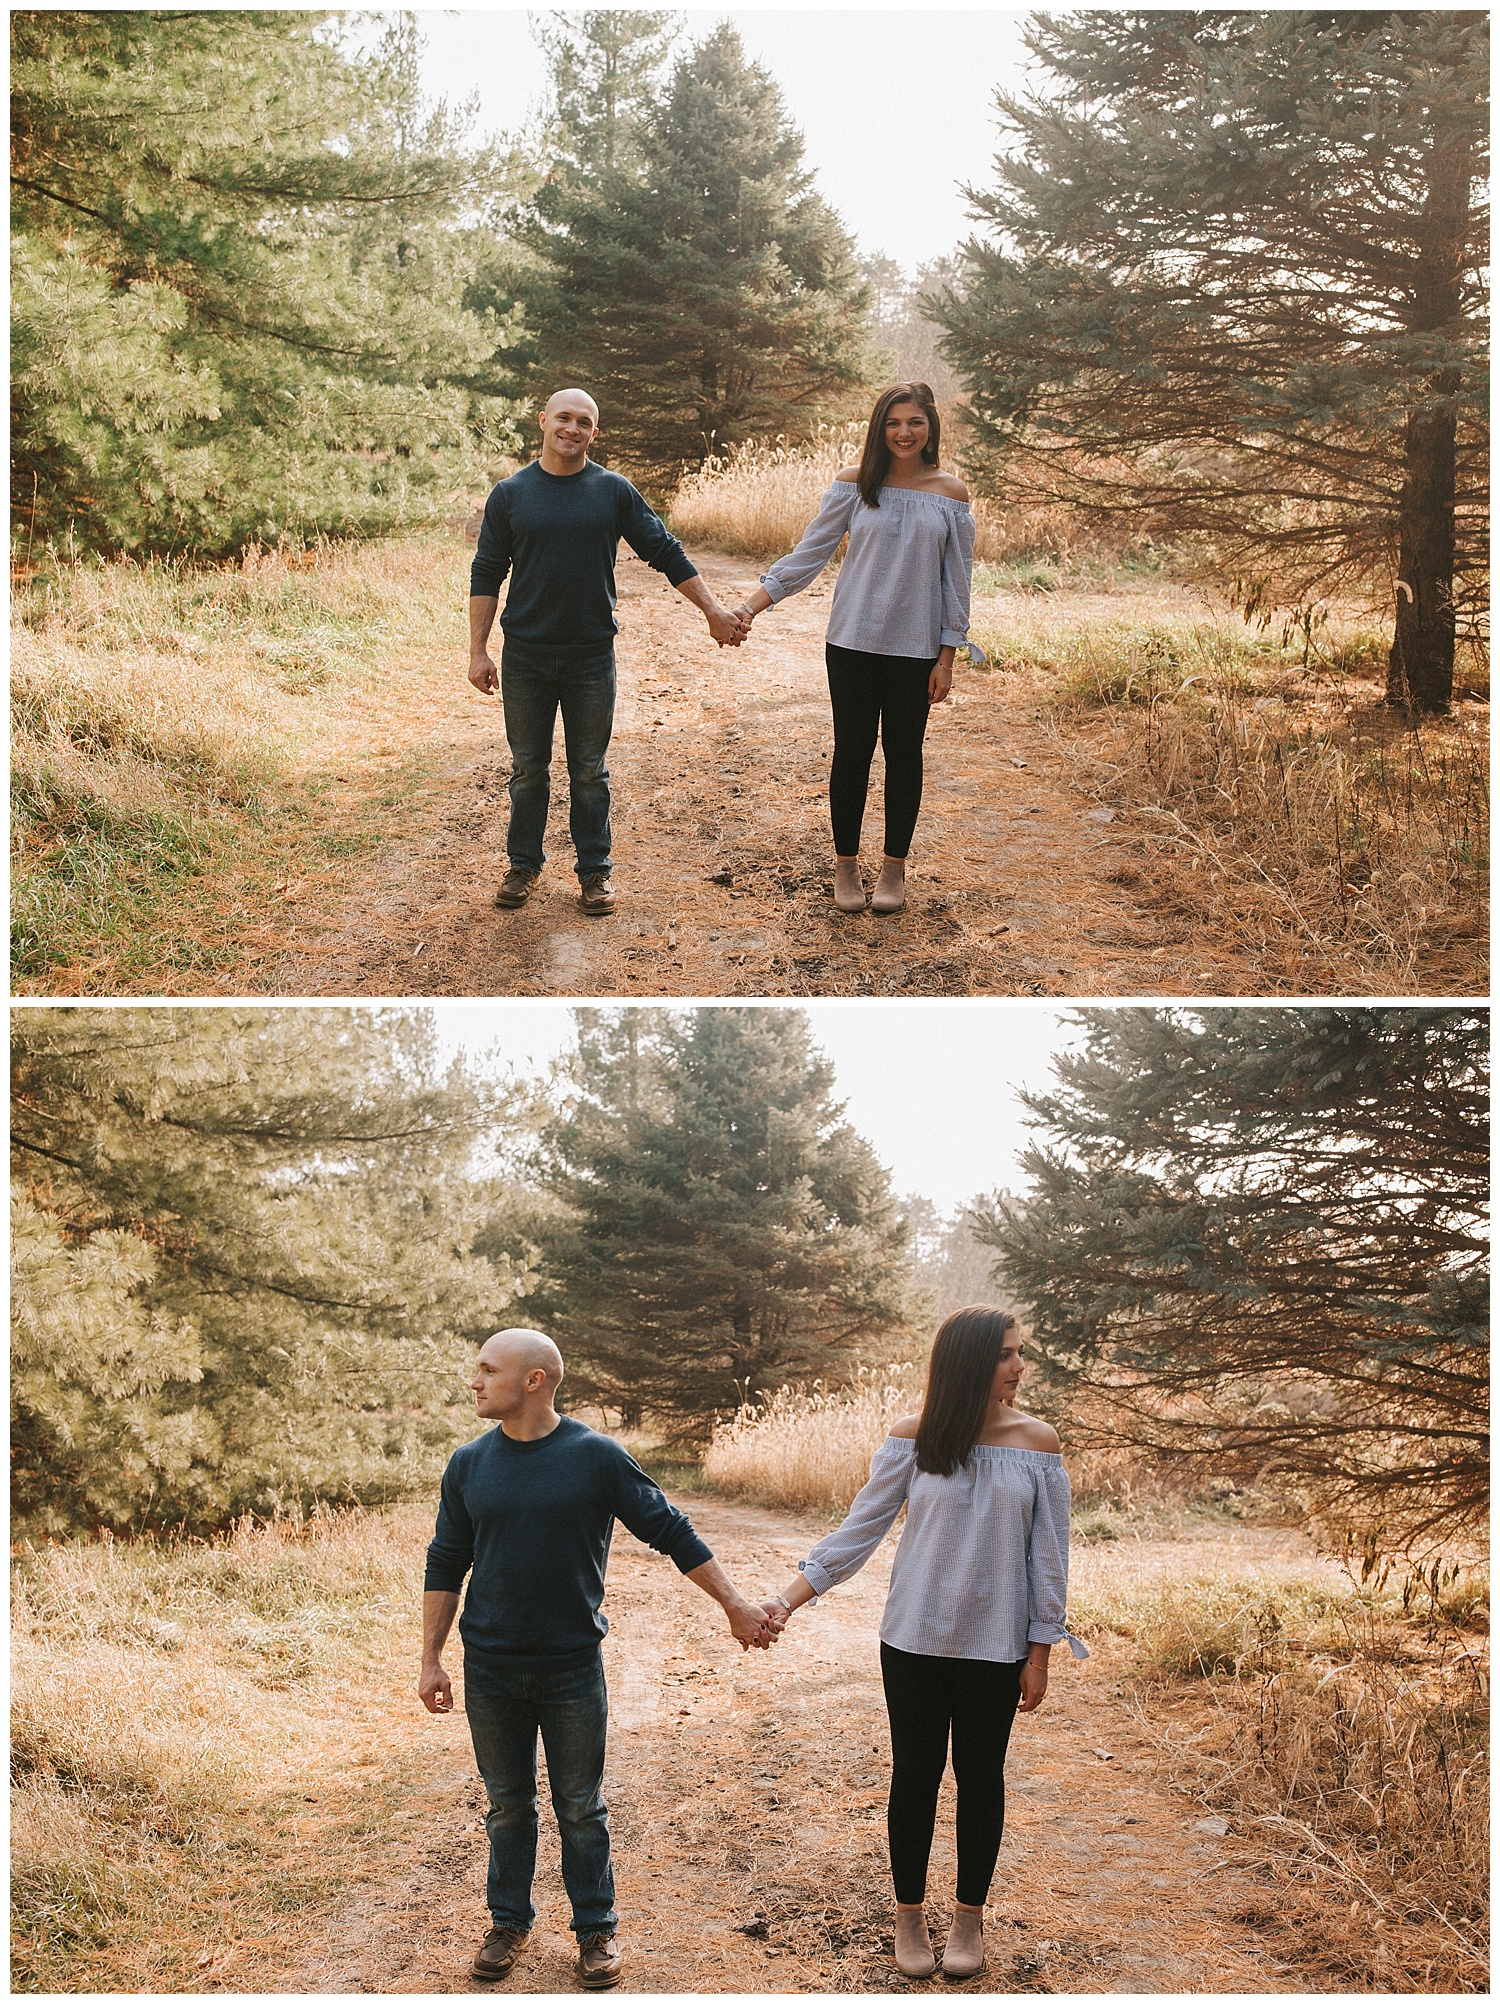 midwest_adventurous_engagement_session_traveling_photographer_0008.jpg